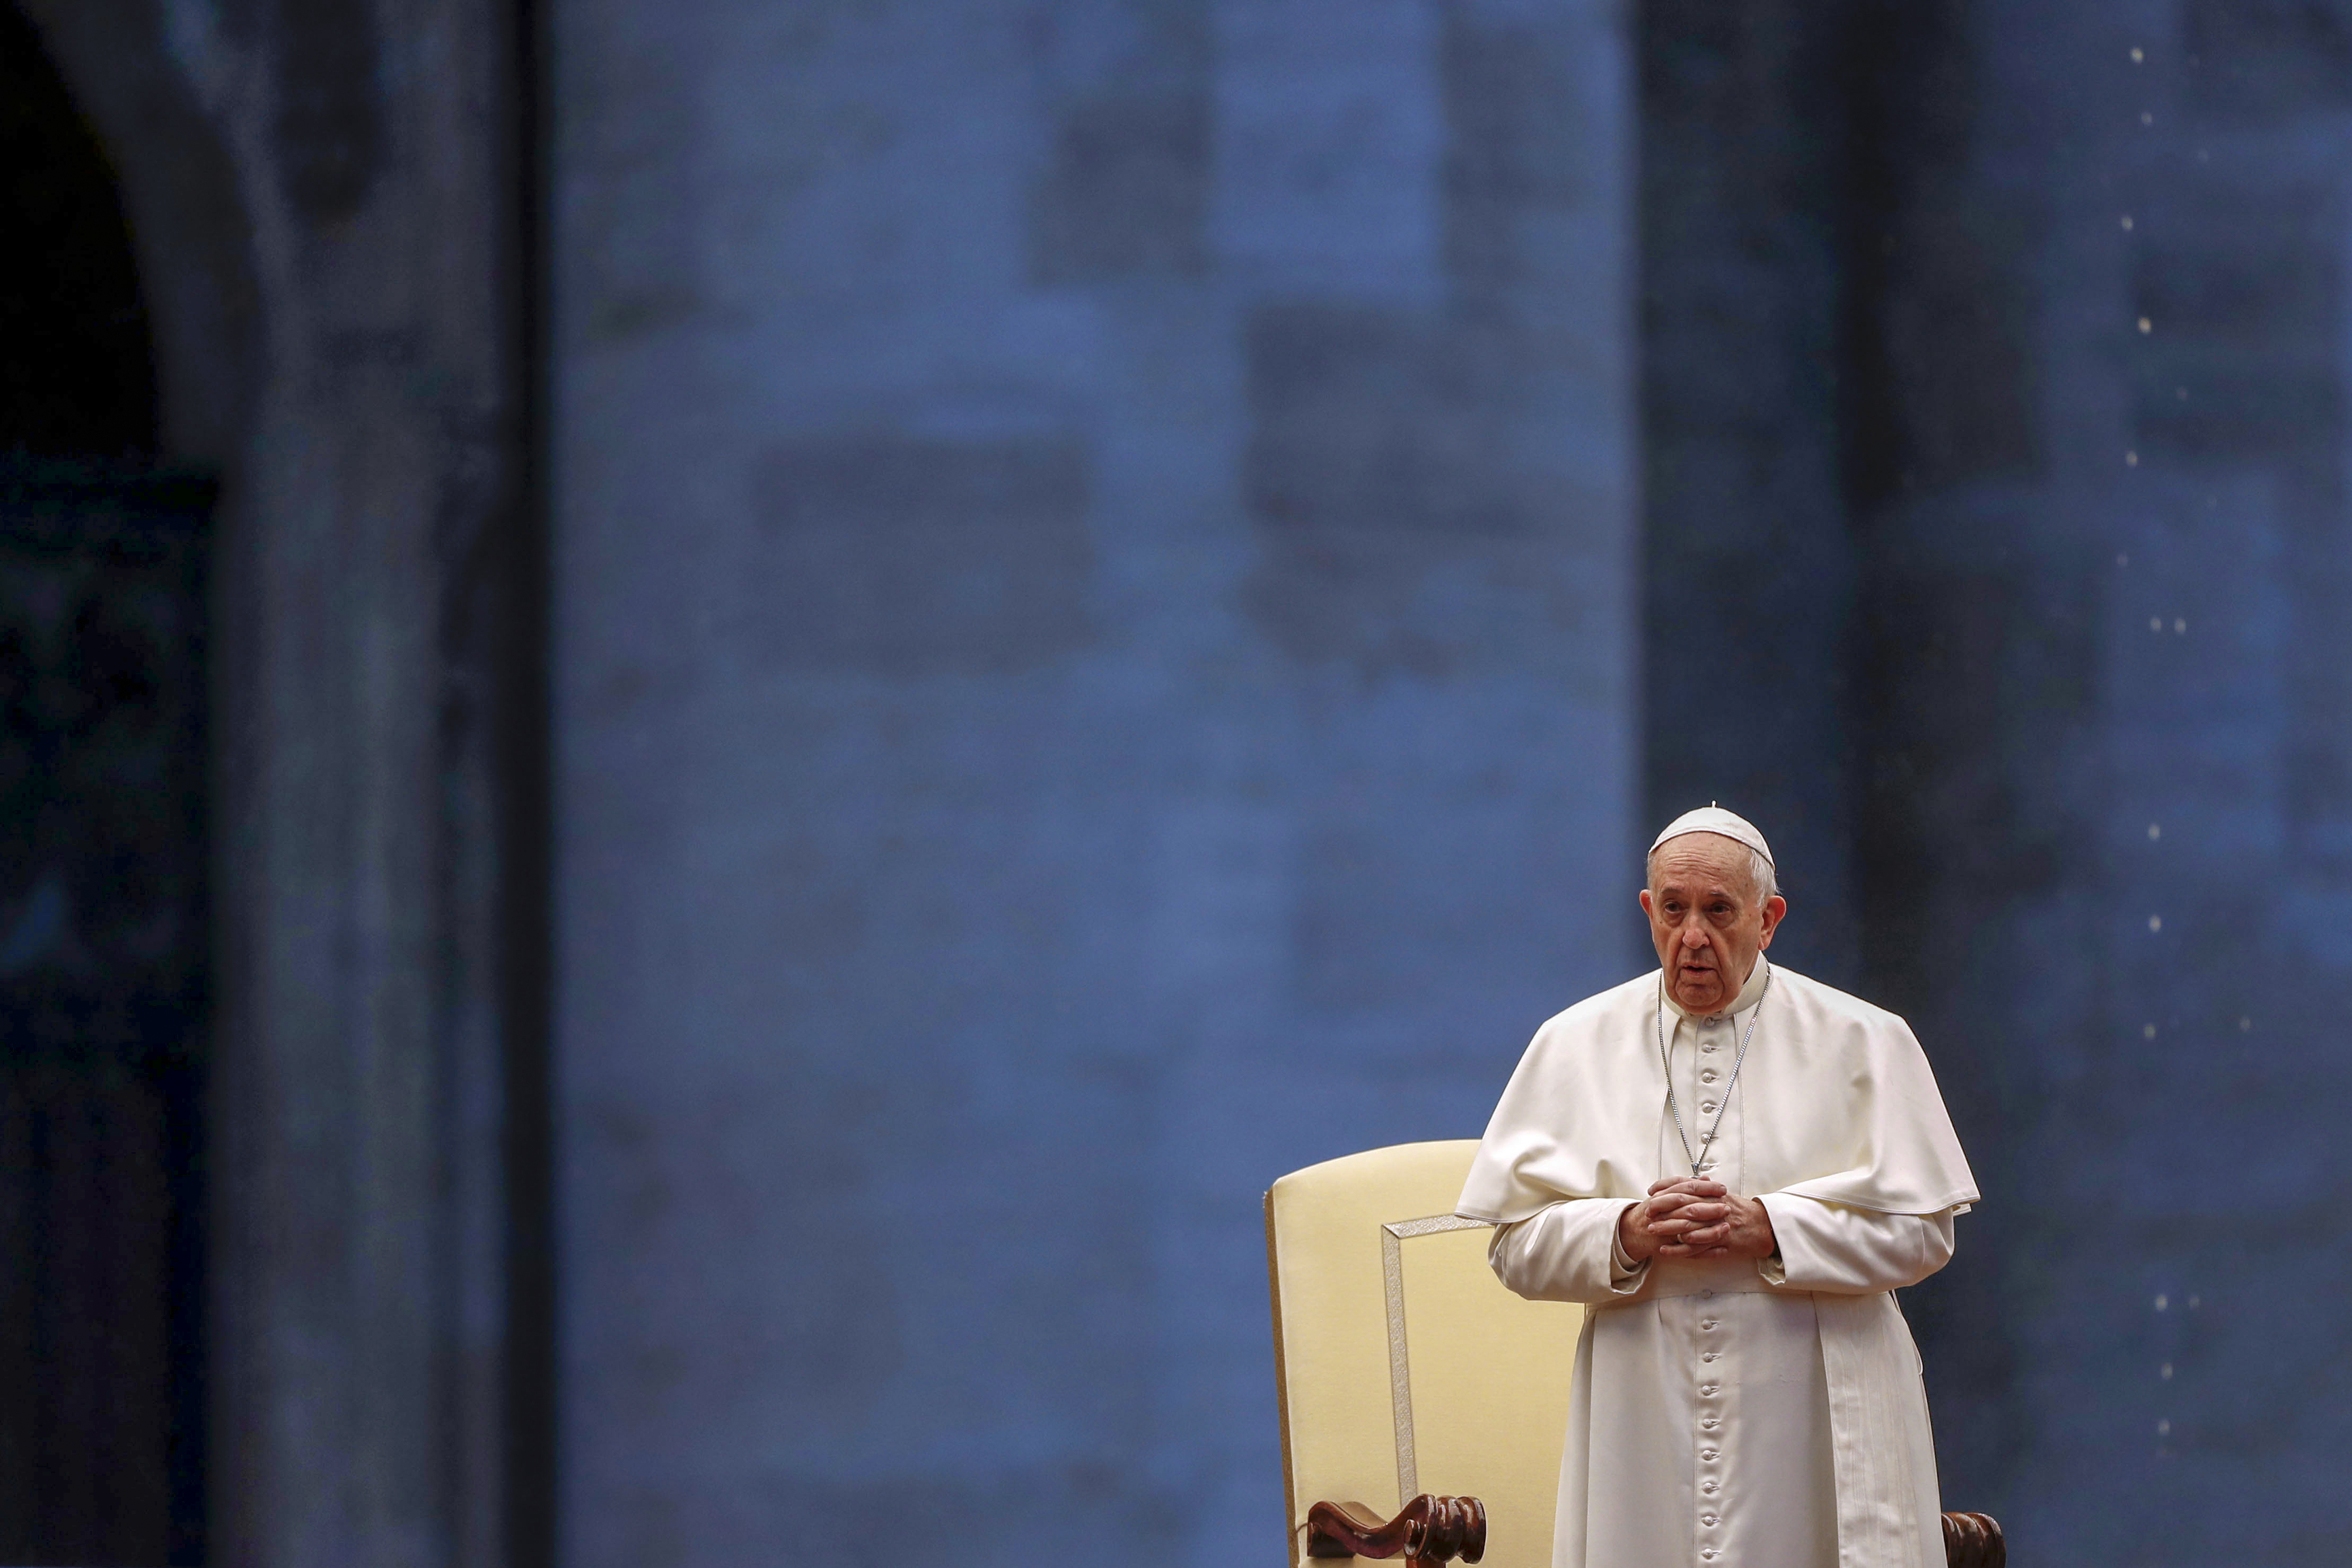 Pope Francis presides over a moment of prayer on the sagrato of St Peters Basilica, the platform at the top of the steps immediately in front of the façade of the Church, to be concluded with the Pope giving the Urbi et Orbi Blessing, on March 27, 2020 at St. Peter's Square in the Vatican. (Photo by YARA NARDI / POOL / AFP) (Photo by YARA NARDI/POOL/AFP via Getty Images)